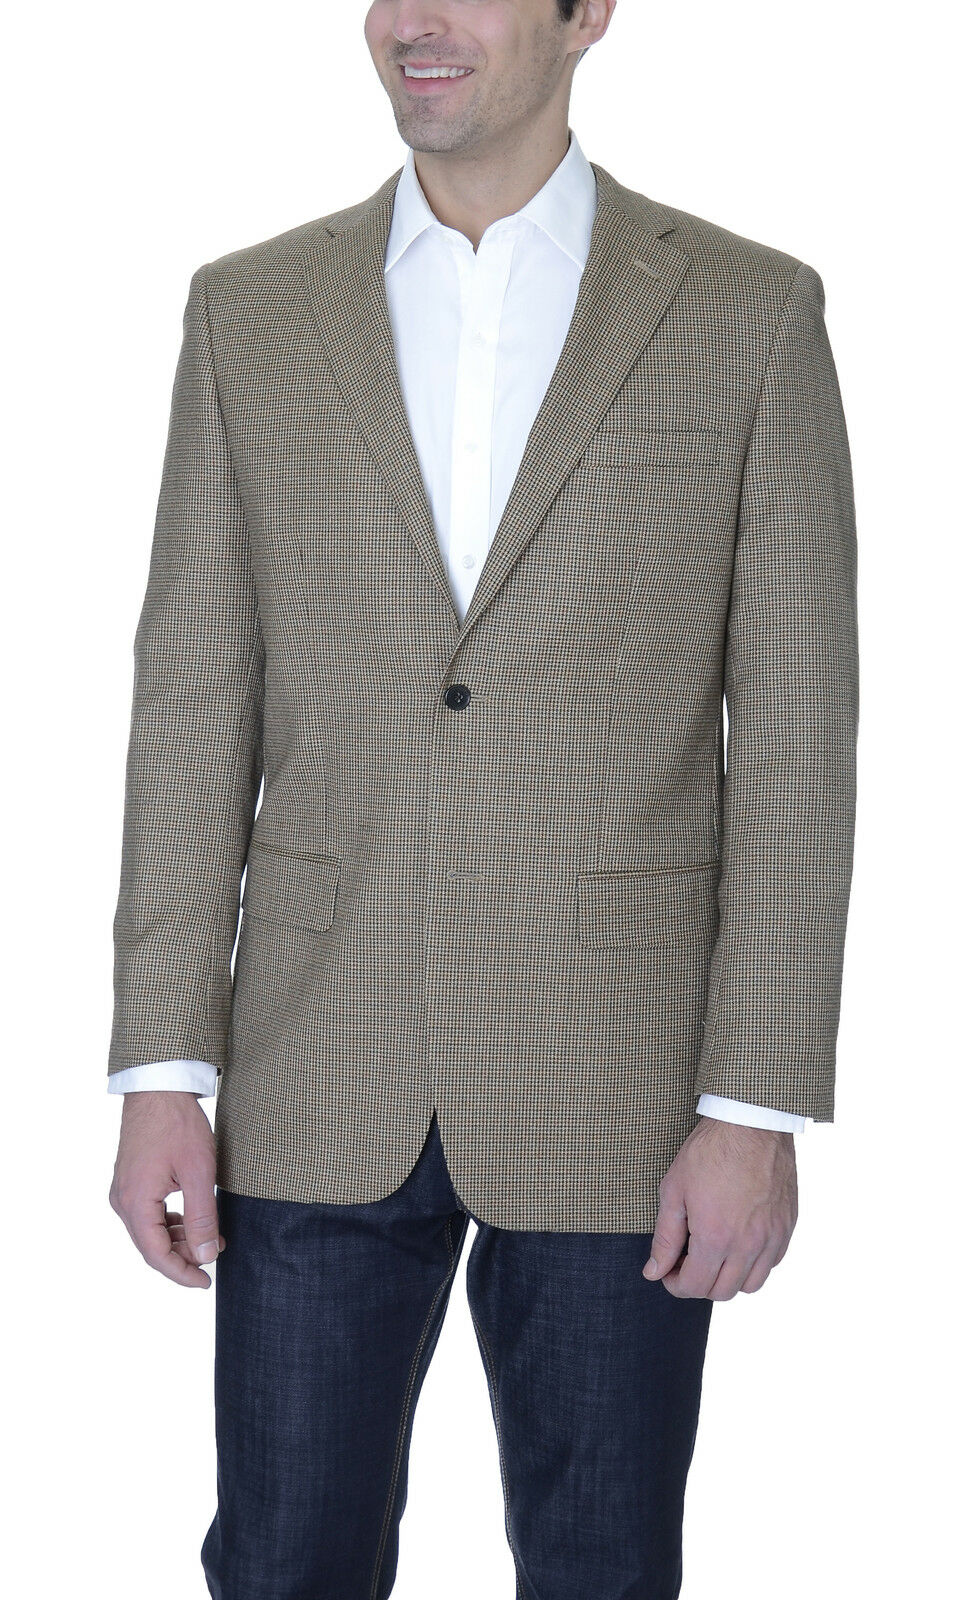 Tasso Elba Classic Fit Tan Houndstooth Two Button Wool Blazer Sportcoat